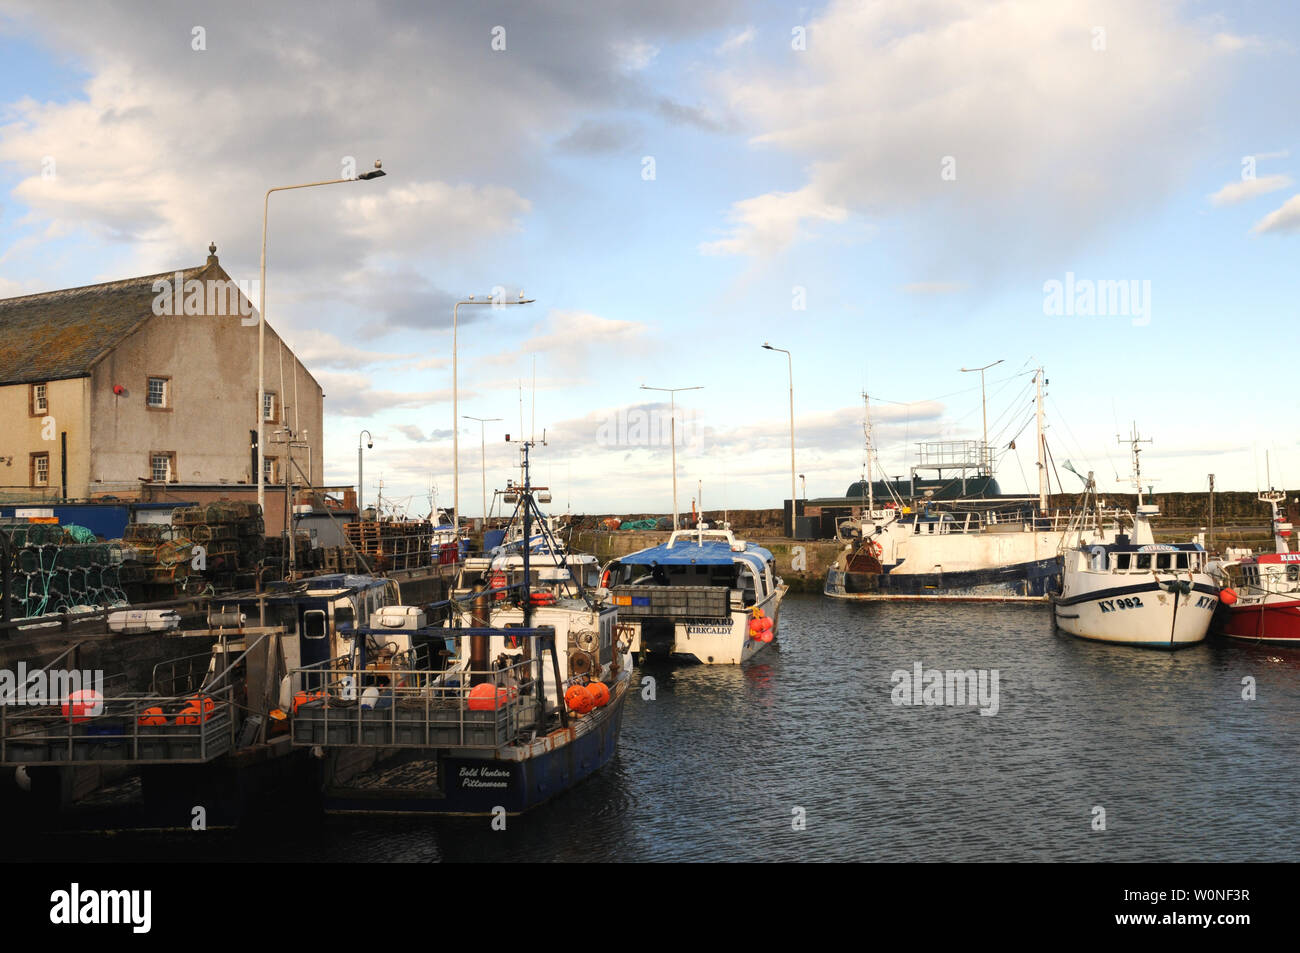 Fishing boats in harbour at Pittenweem a port on the Fife coast of Scotland. Fish is both landed and sold in the wholesale fish market in the port. - Stock Image